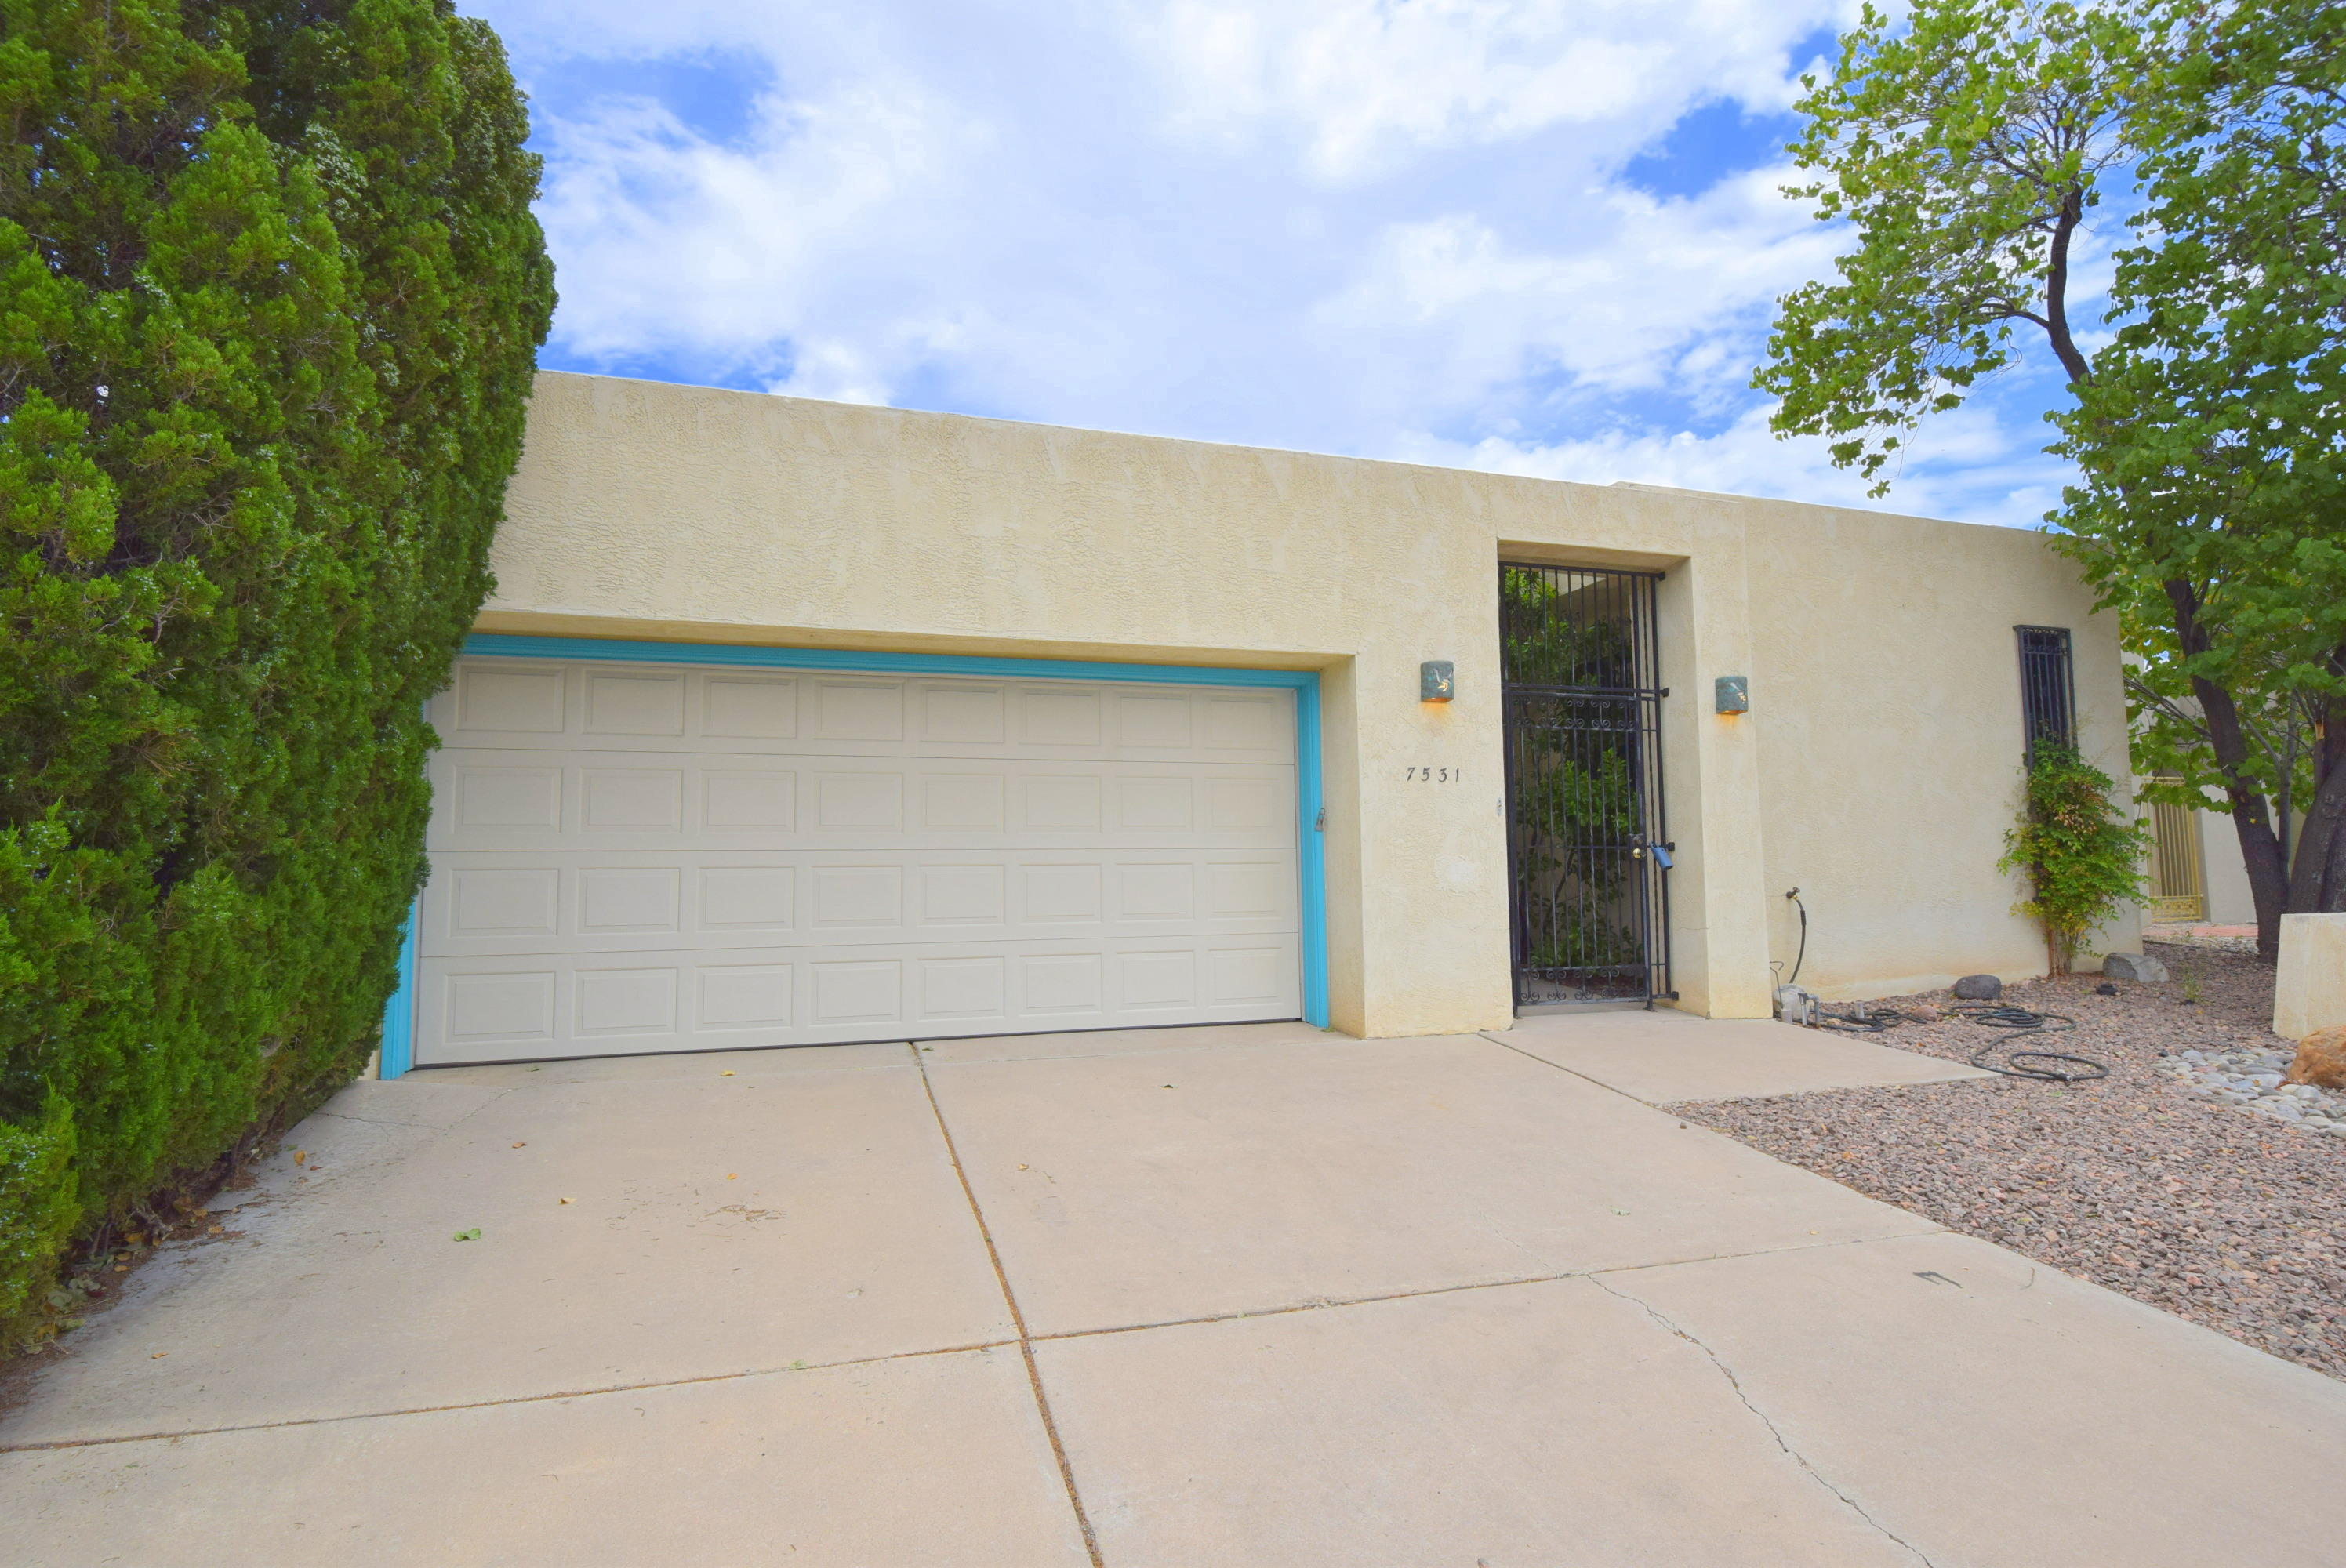 7531 Quemado Court NE Property Photo - Albuquerque, NM real estate listing